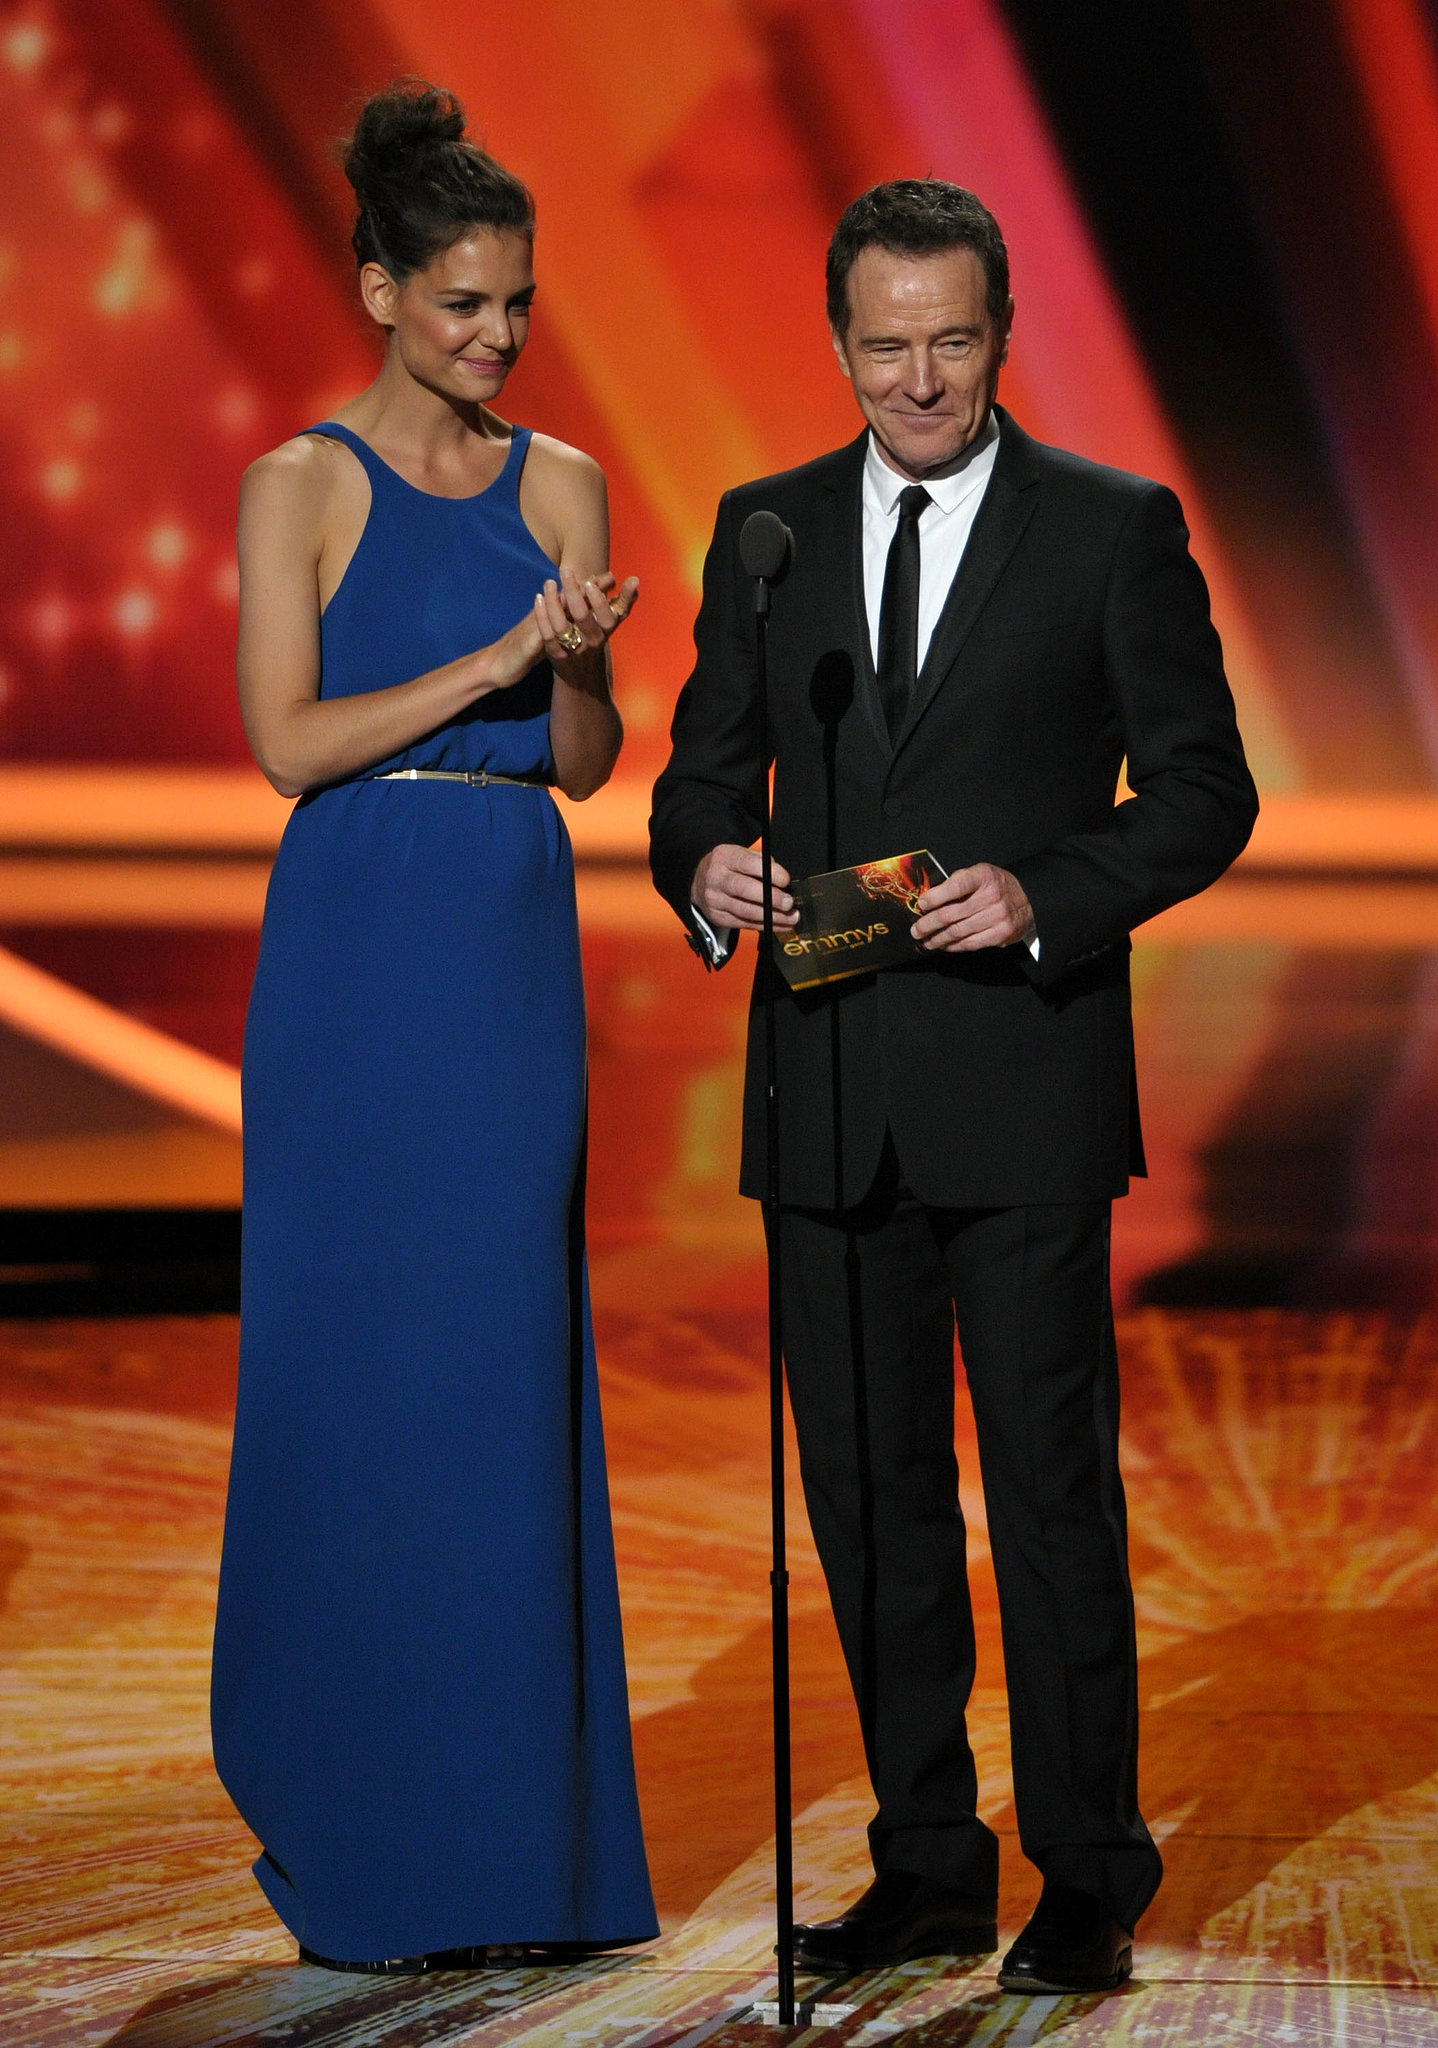 Katie Holmes was joined on stage by Bryan Cranston during the 2011 telecast.